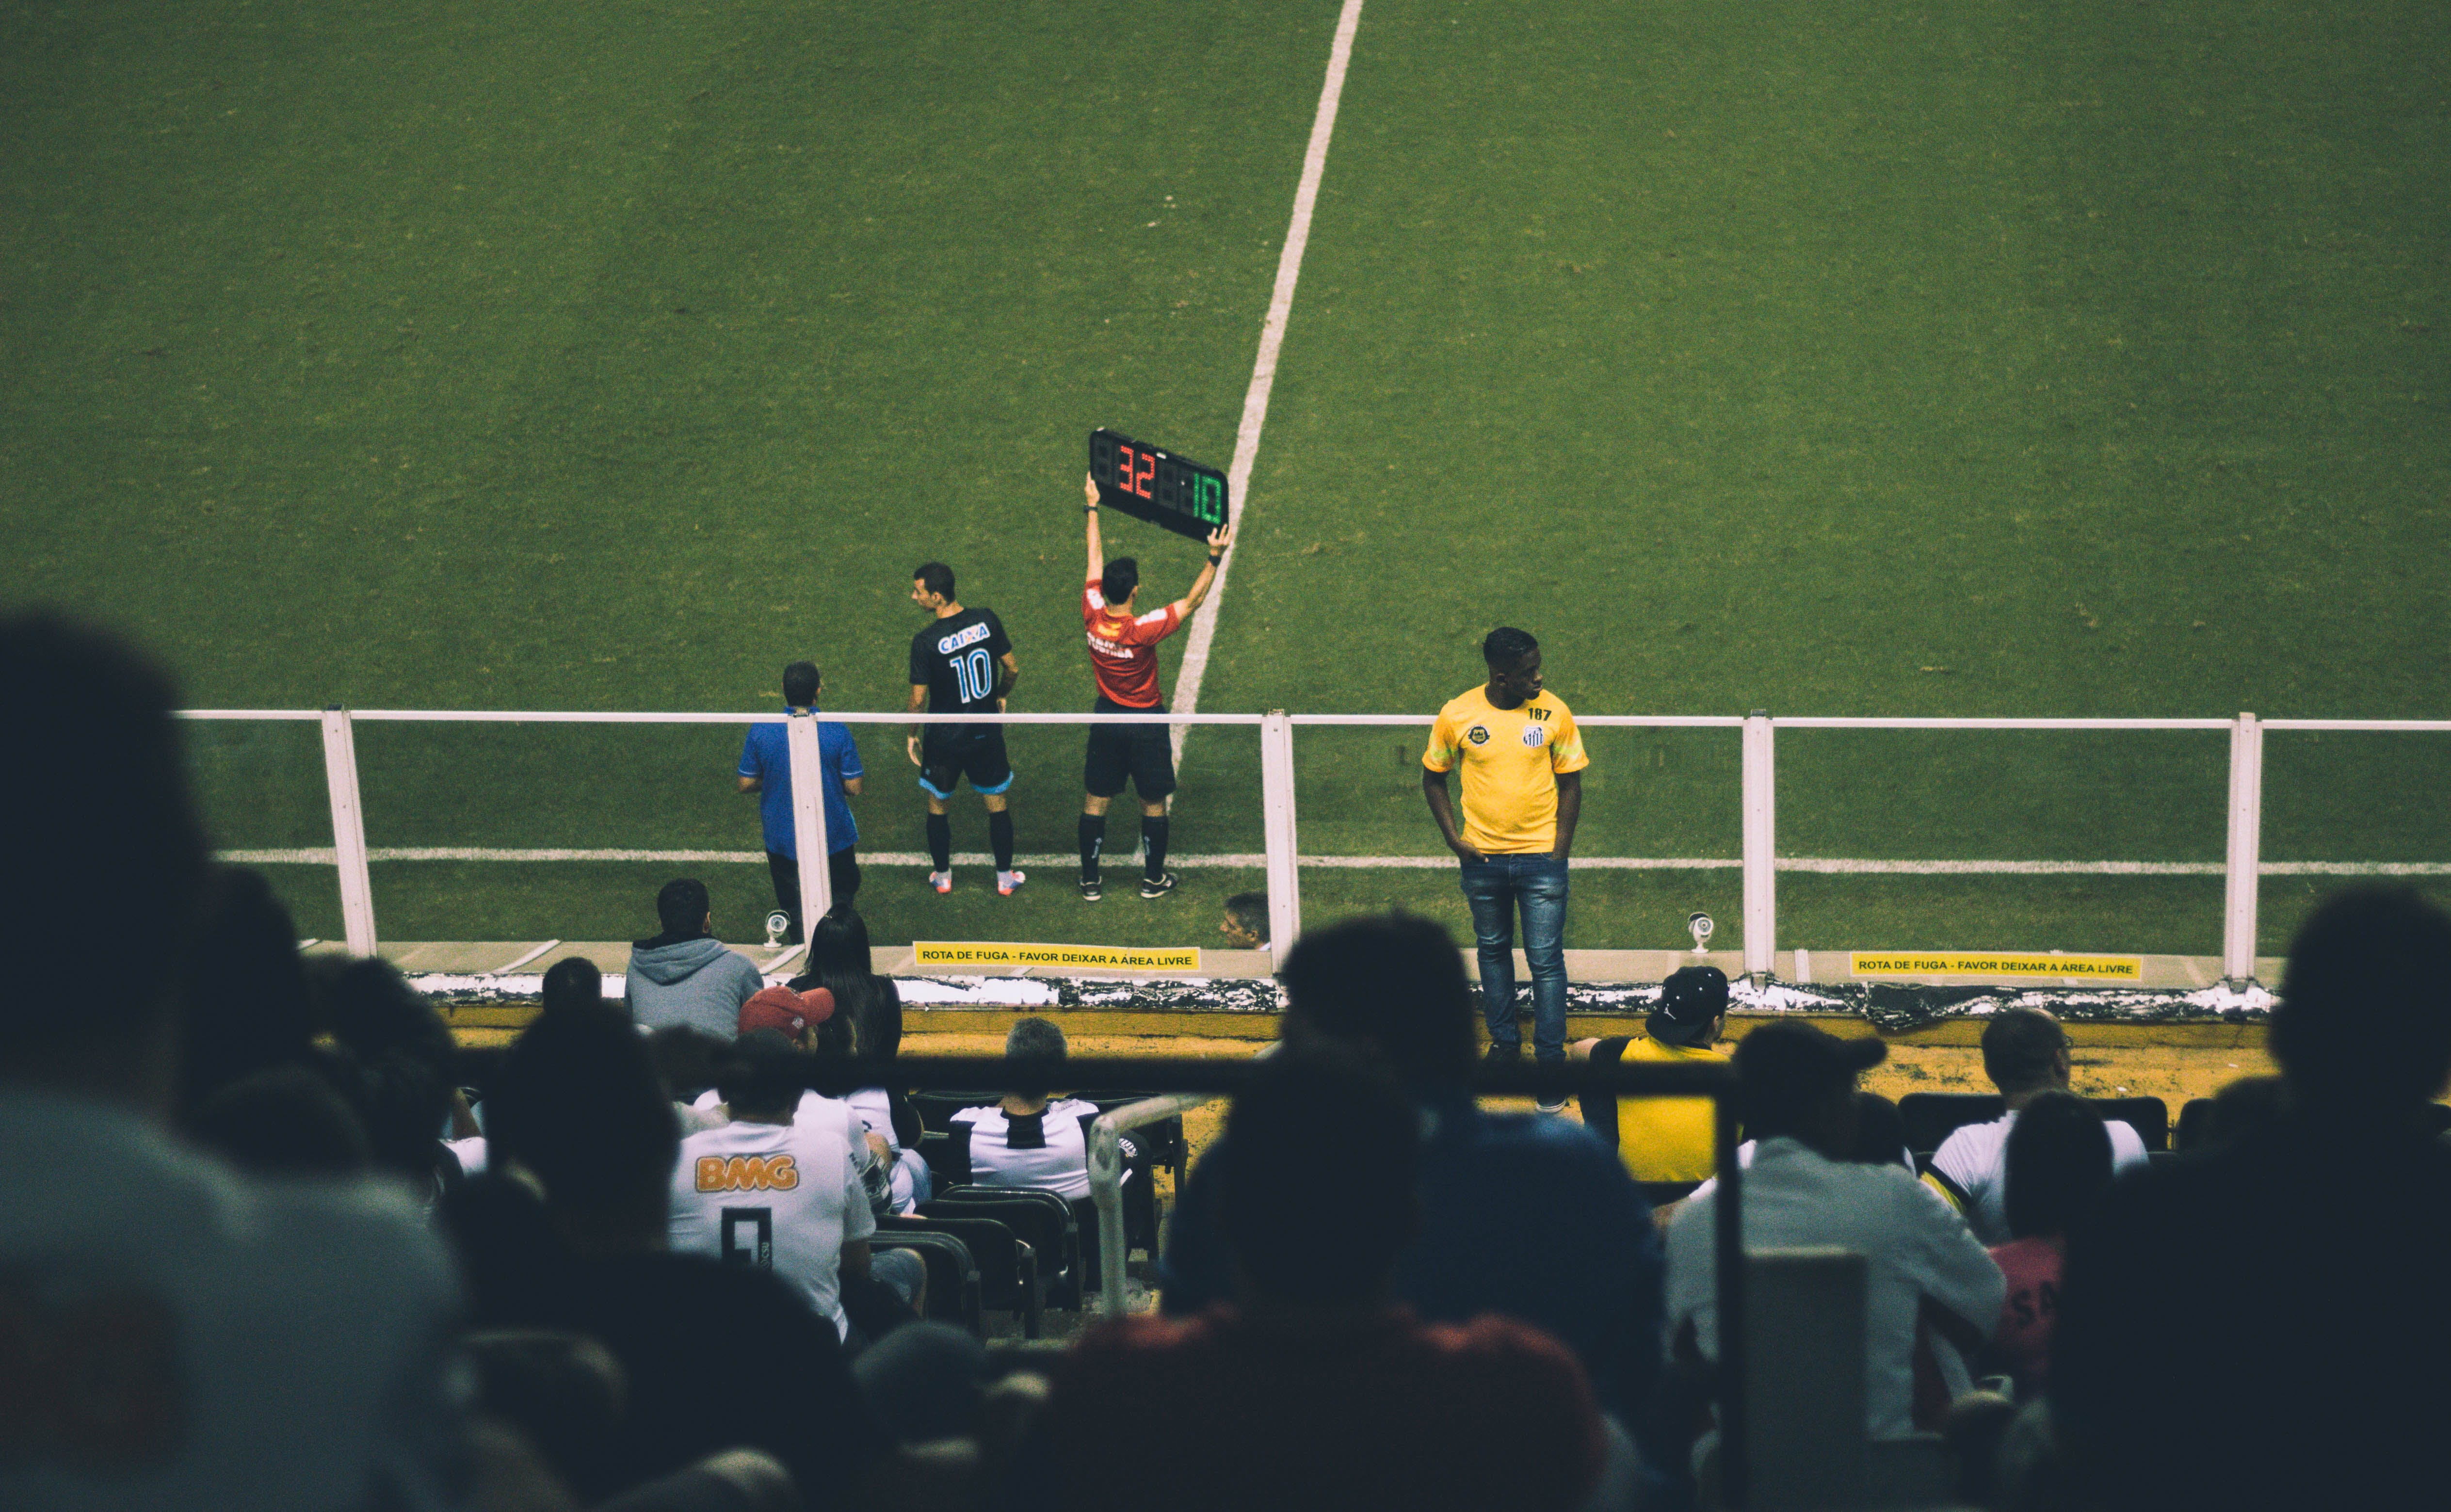 Photo of Crowd of People in Soccer Stadium